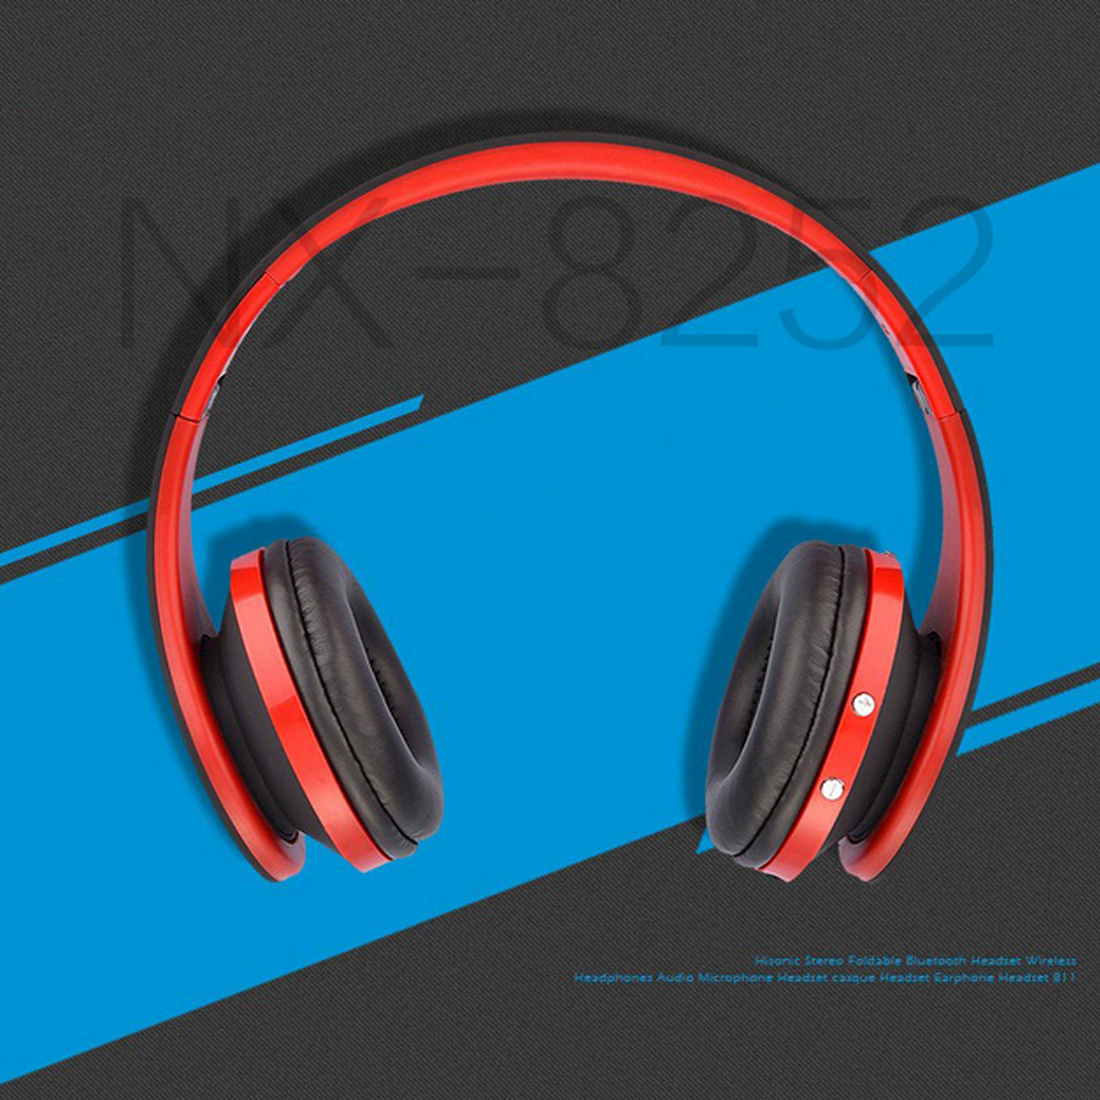 Marsnaska Foldable Audio Bluetooth Handsfree Stereo Wireless Headphones Headset wireless Earphone for Computer PC Headphone remax bluetooth 4 1 wireless headphones music earphone stereo foldable headset handsfree noise reduction for iphone 7 galaxy htc